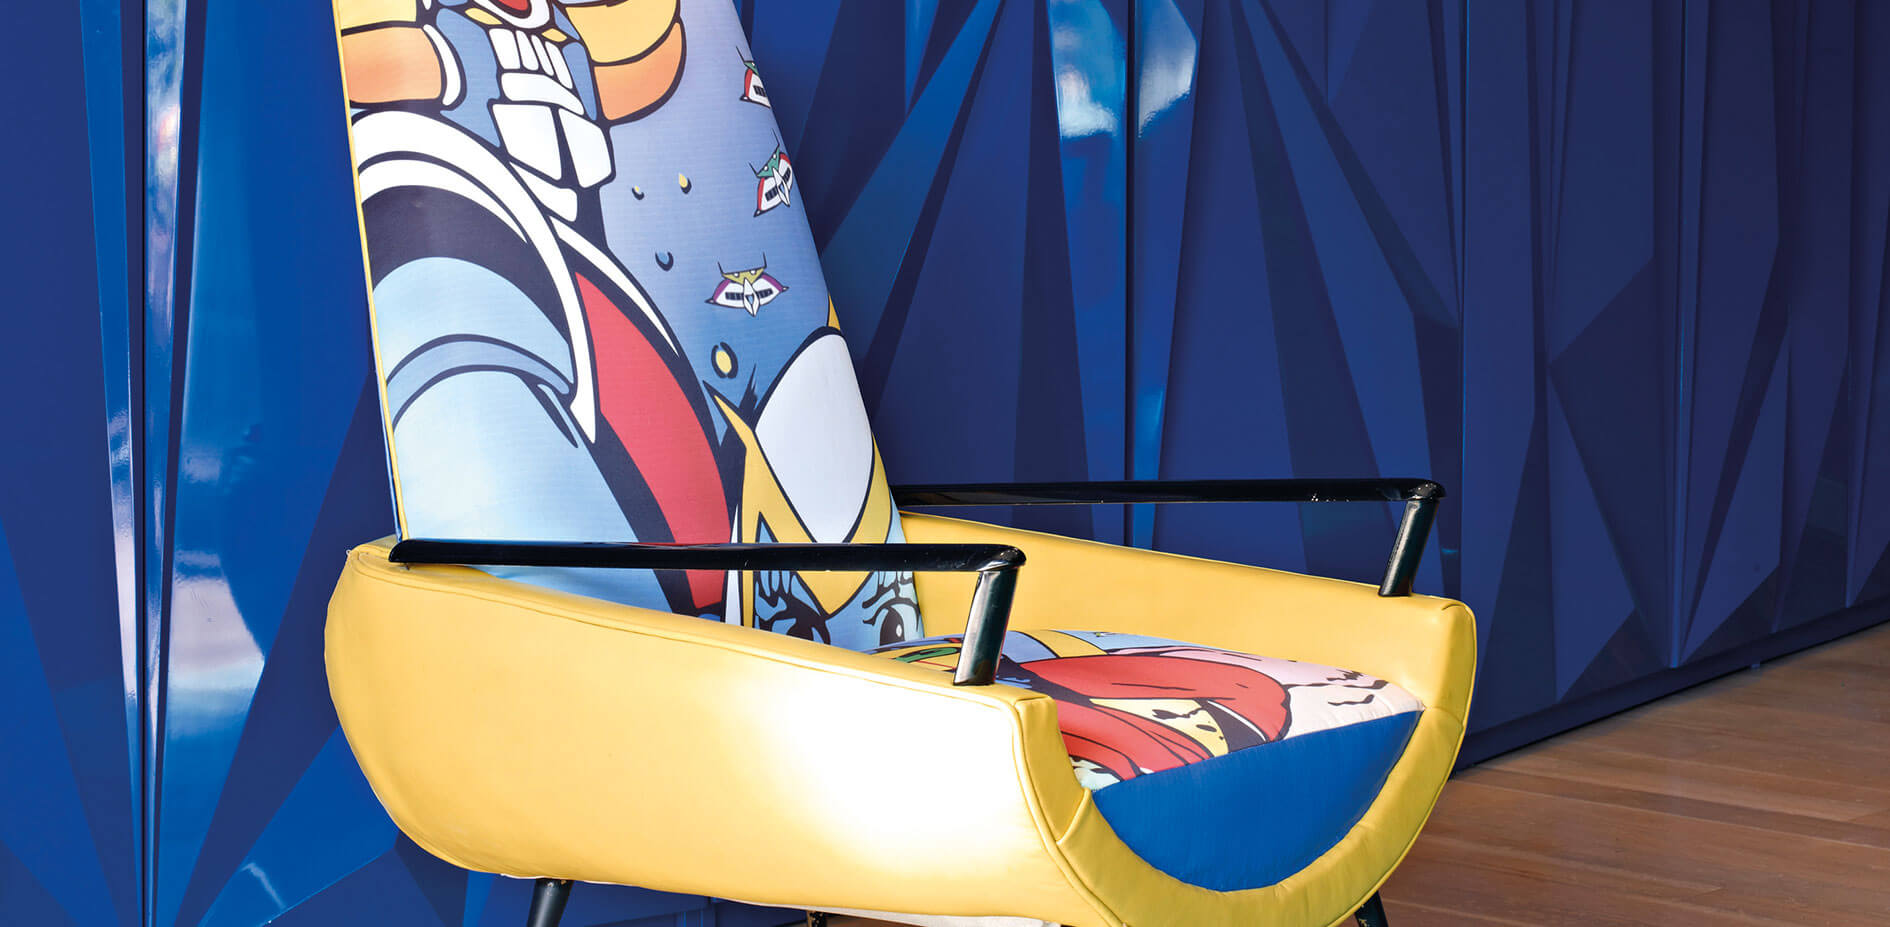 A close up of the colorful and unique chair. The style is futuristic, and the bold yellow contrasts with the angular pattern on the blue walls behind it.